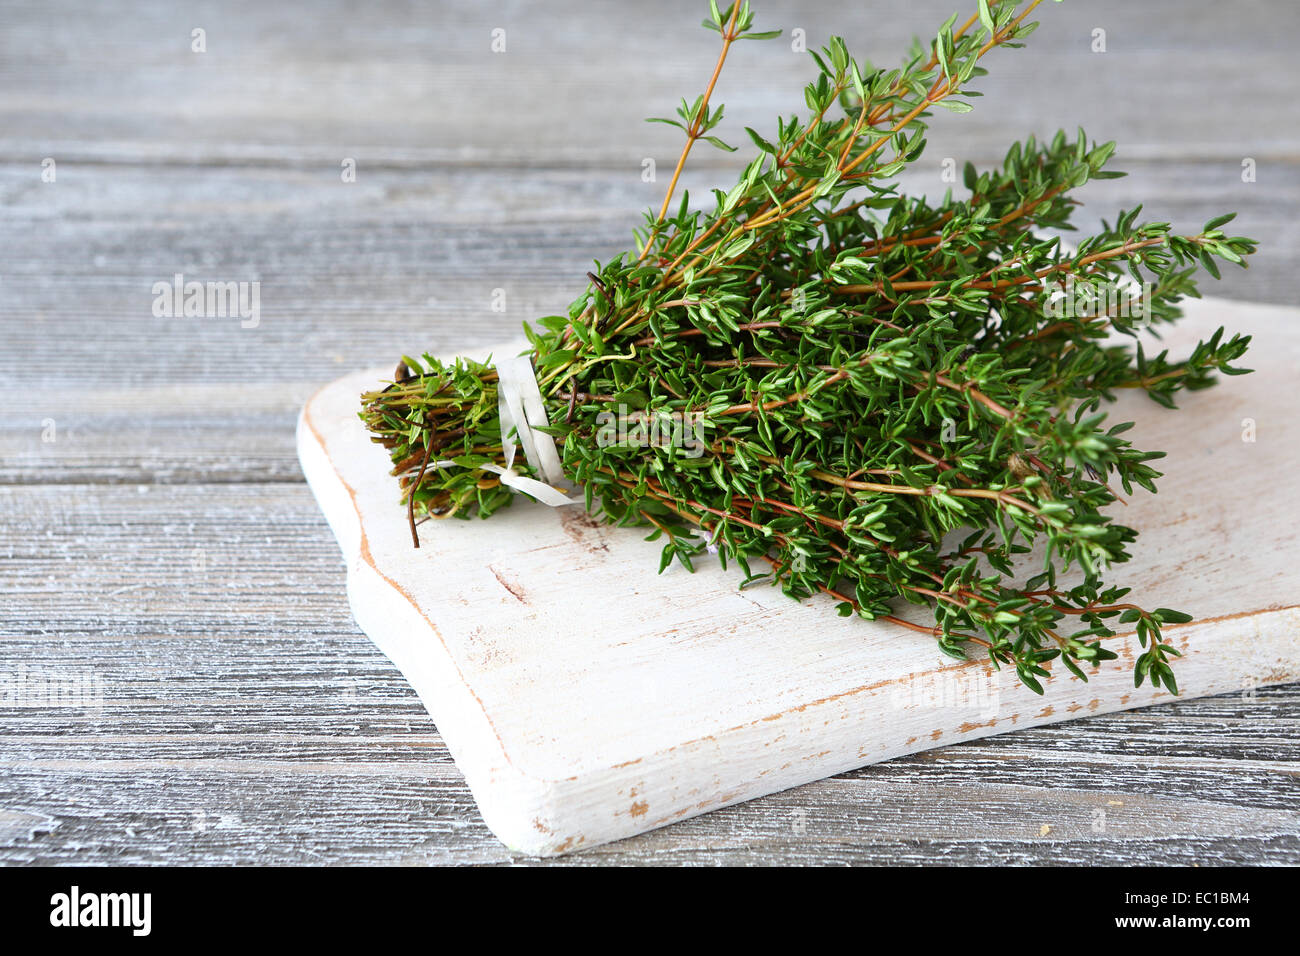 Bunch of fragrant thyme, spice herb - Stock Image